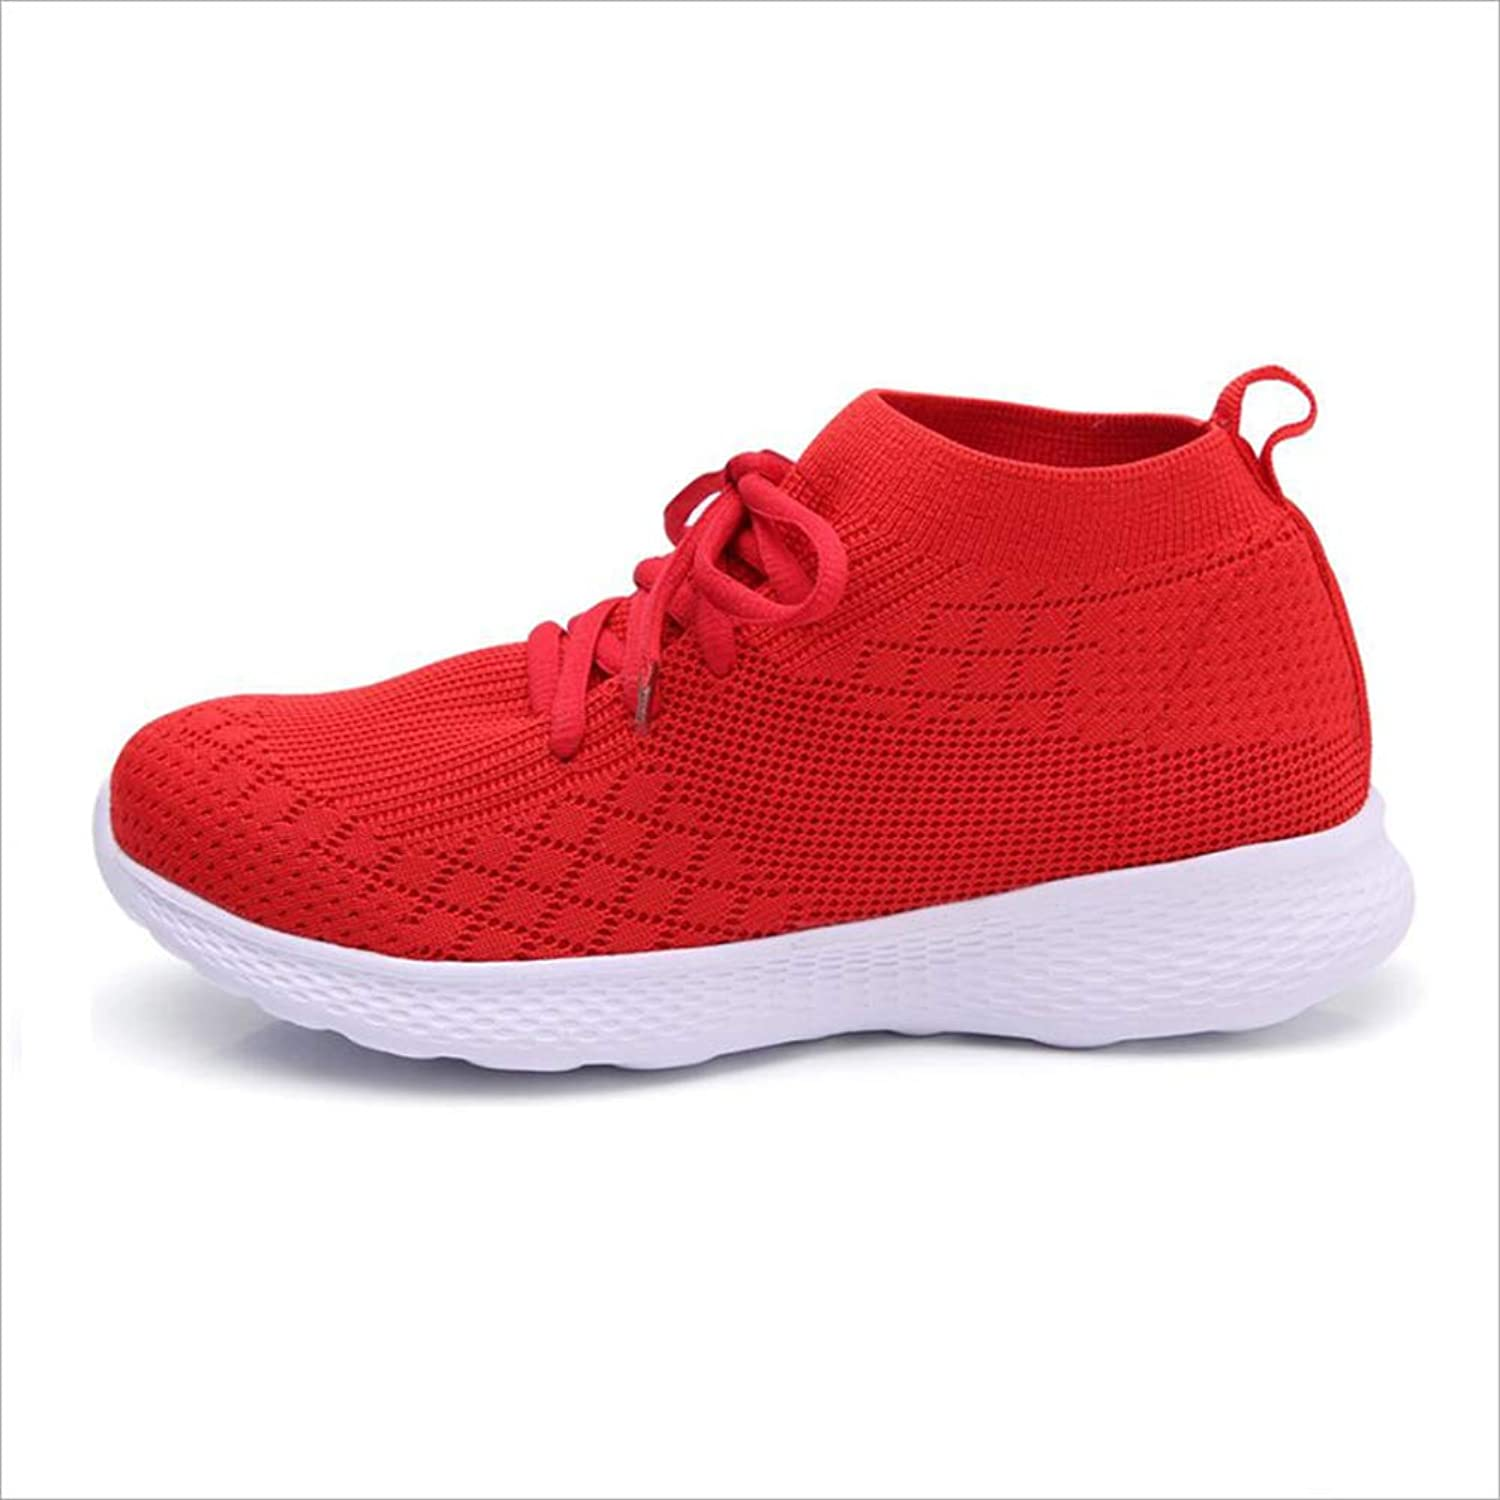 MhC Womens Casual shoes,Weave Net Lightweight Casual Athletic shoes,Spring Summer Fall Shock Absorption Breathable Athletic Sneakers,Outdoor Sneakers for Gym Park